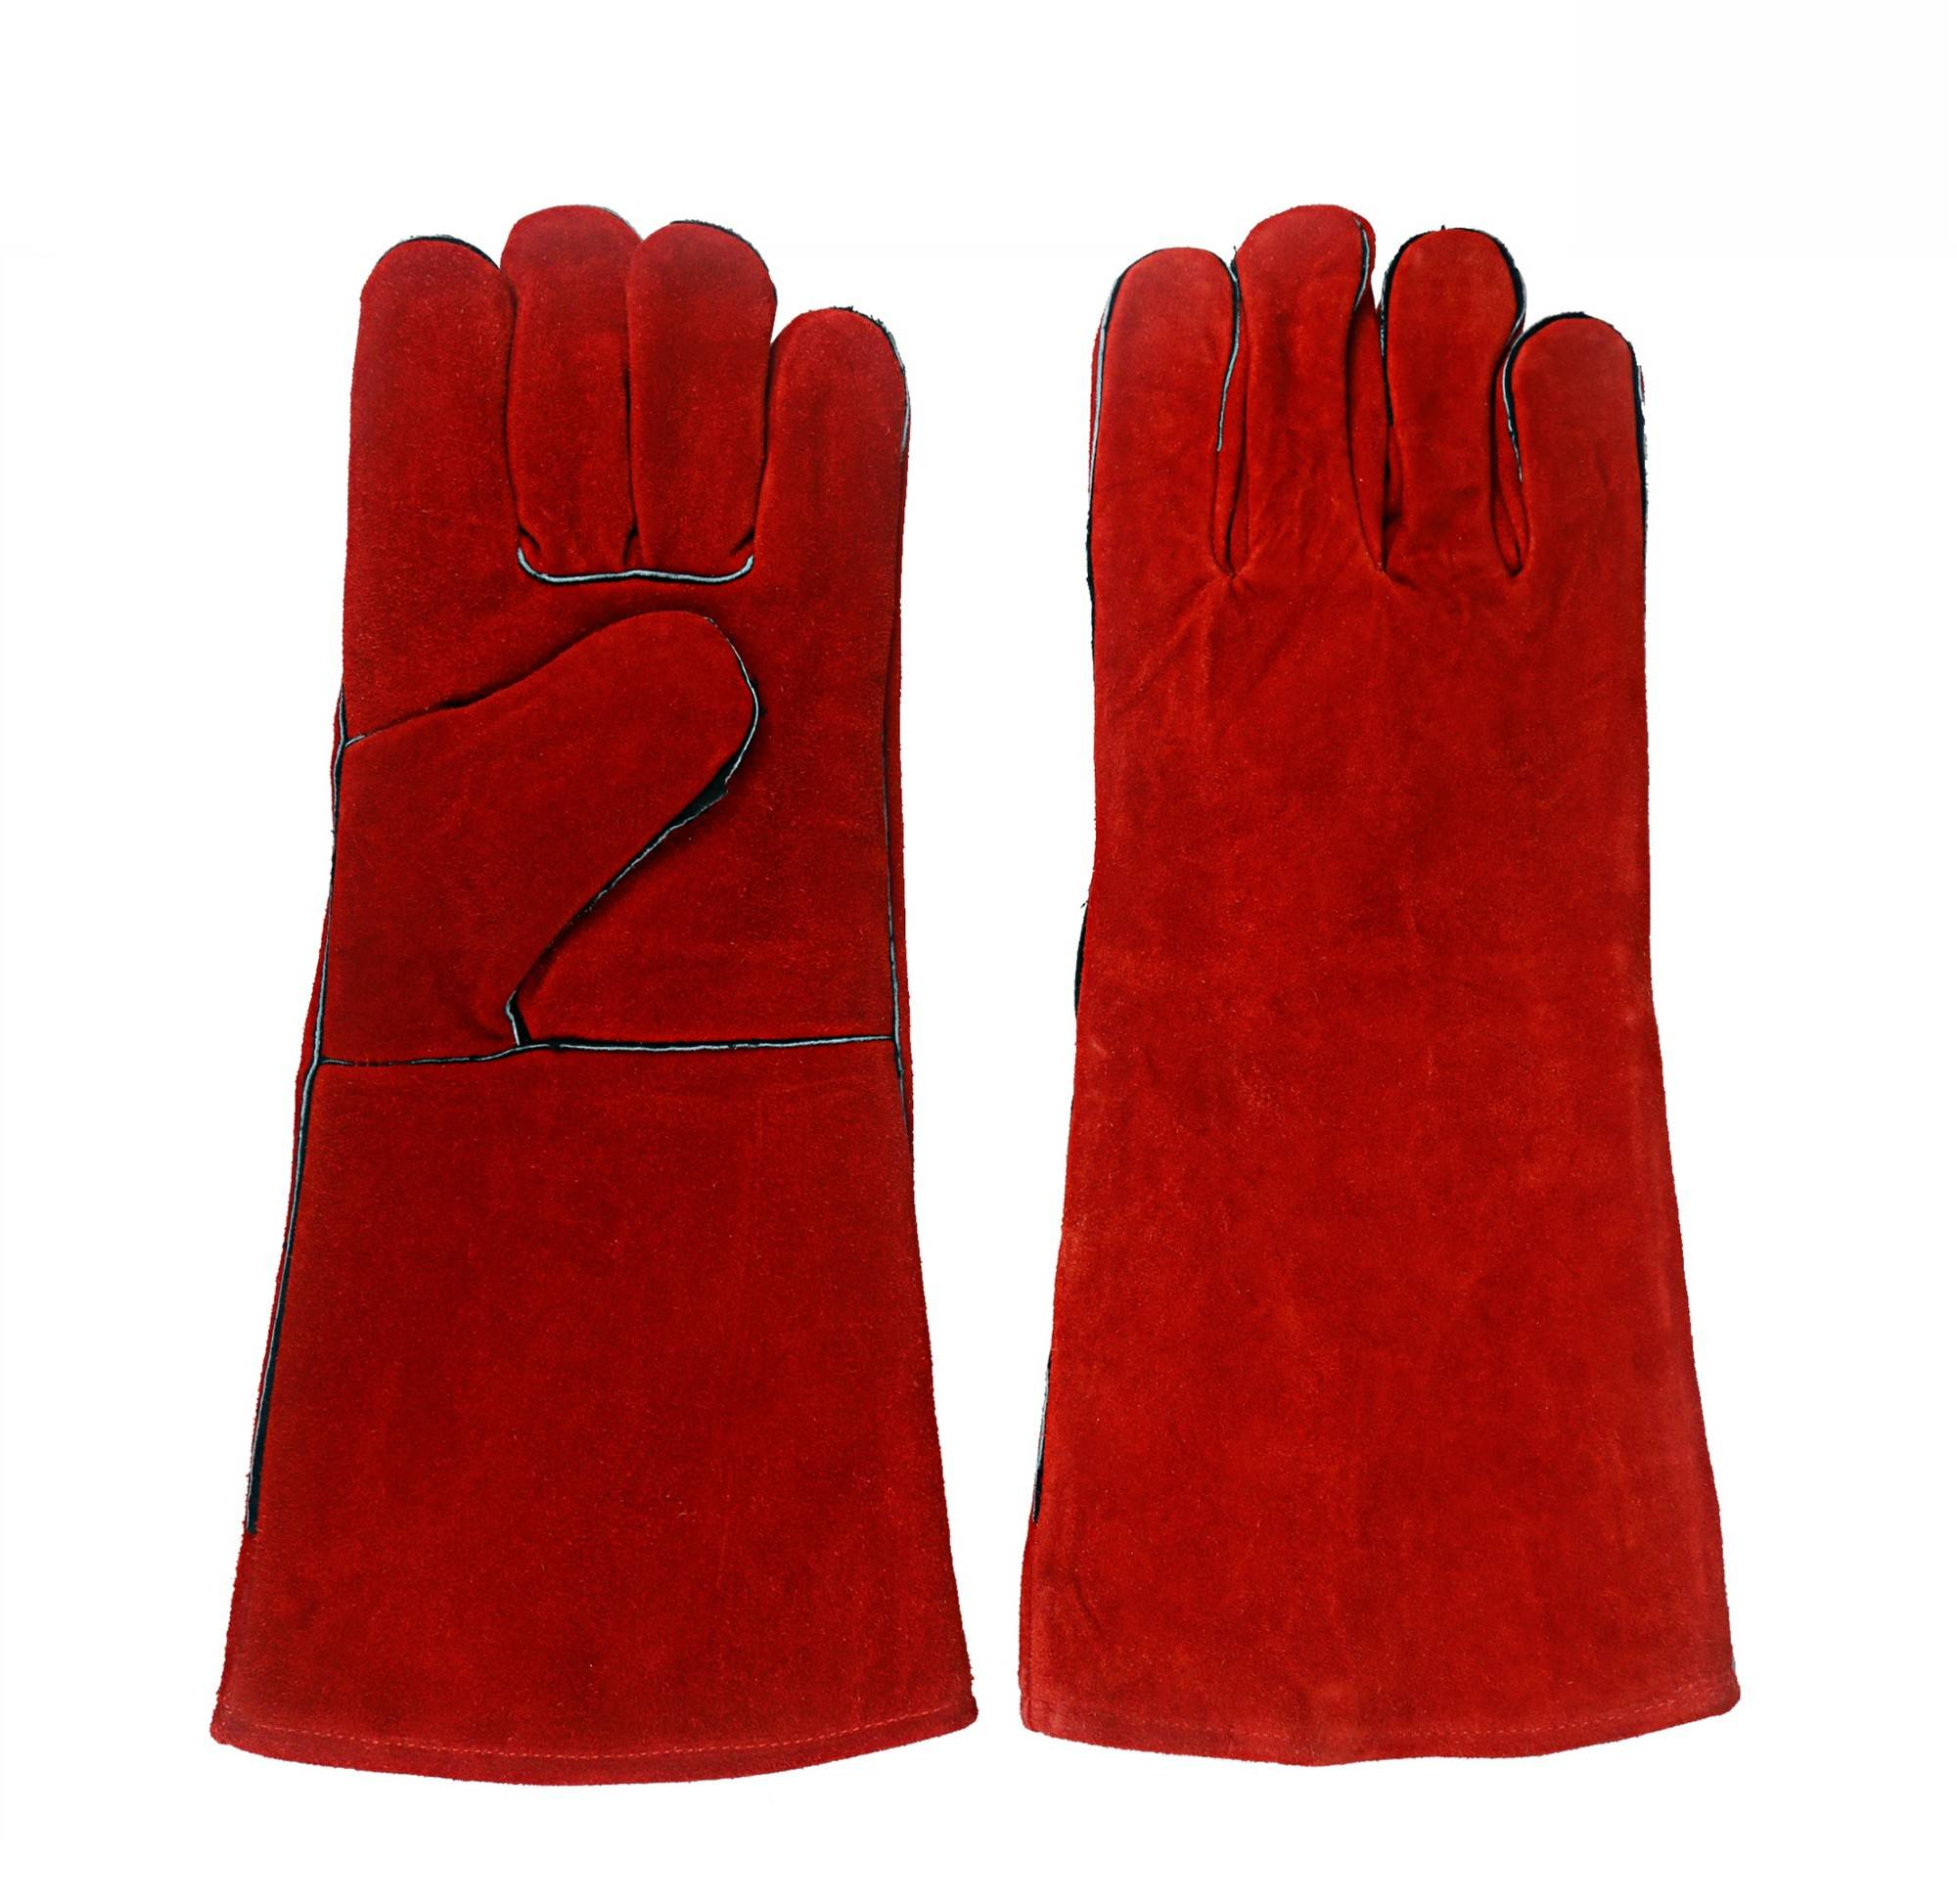 KIM YUAN Leather Welding Gloves - Heat/Fire Resistant, Perfect for Welder/Oven/Fireplace/Animal Handling/BBQ